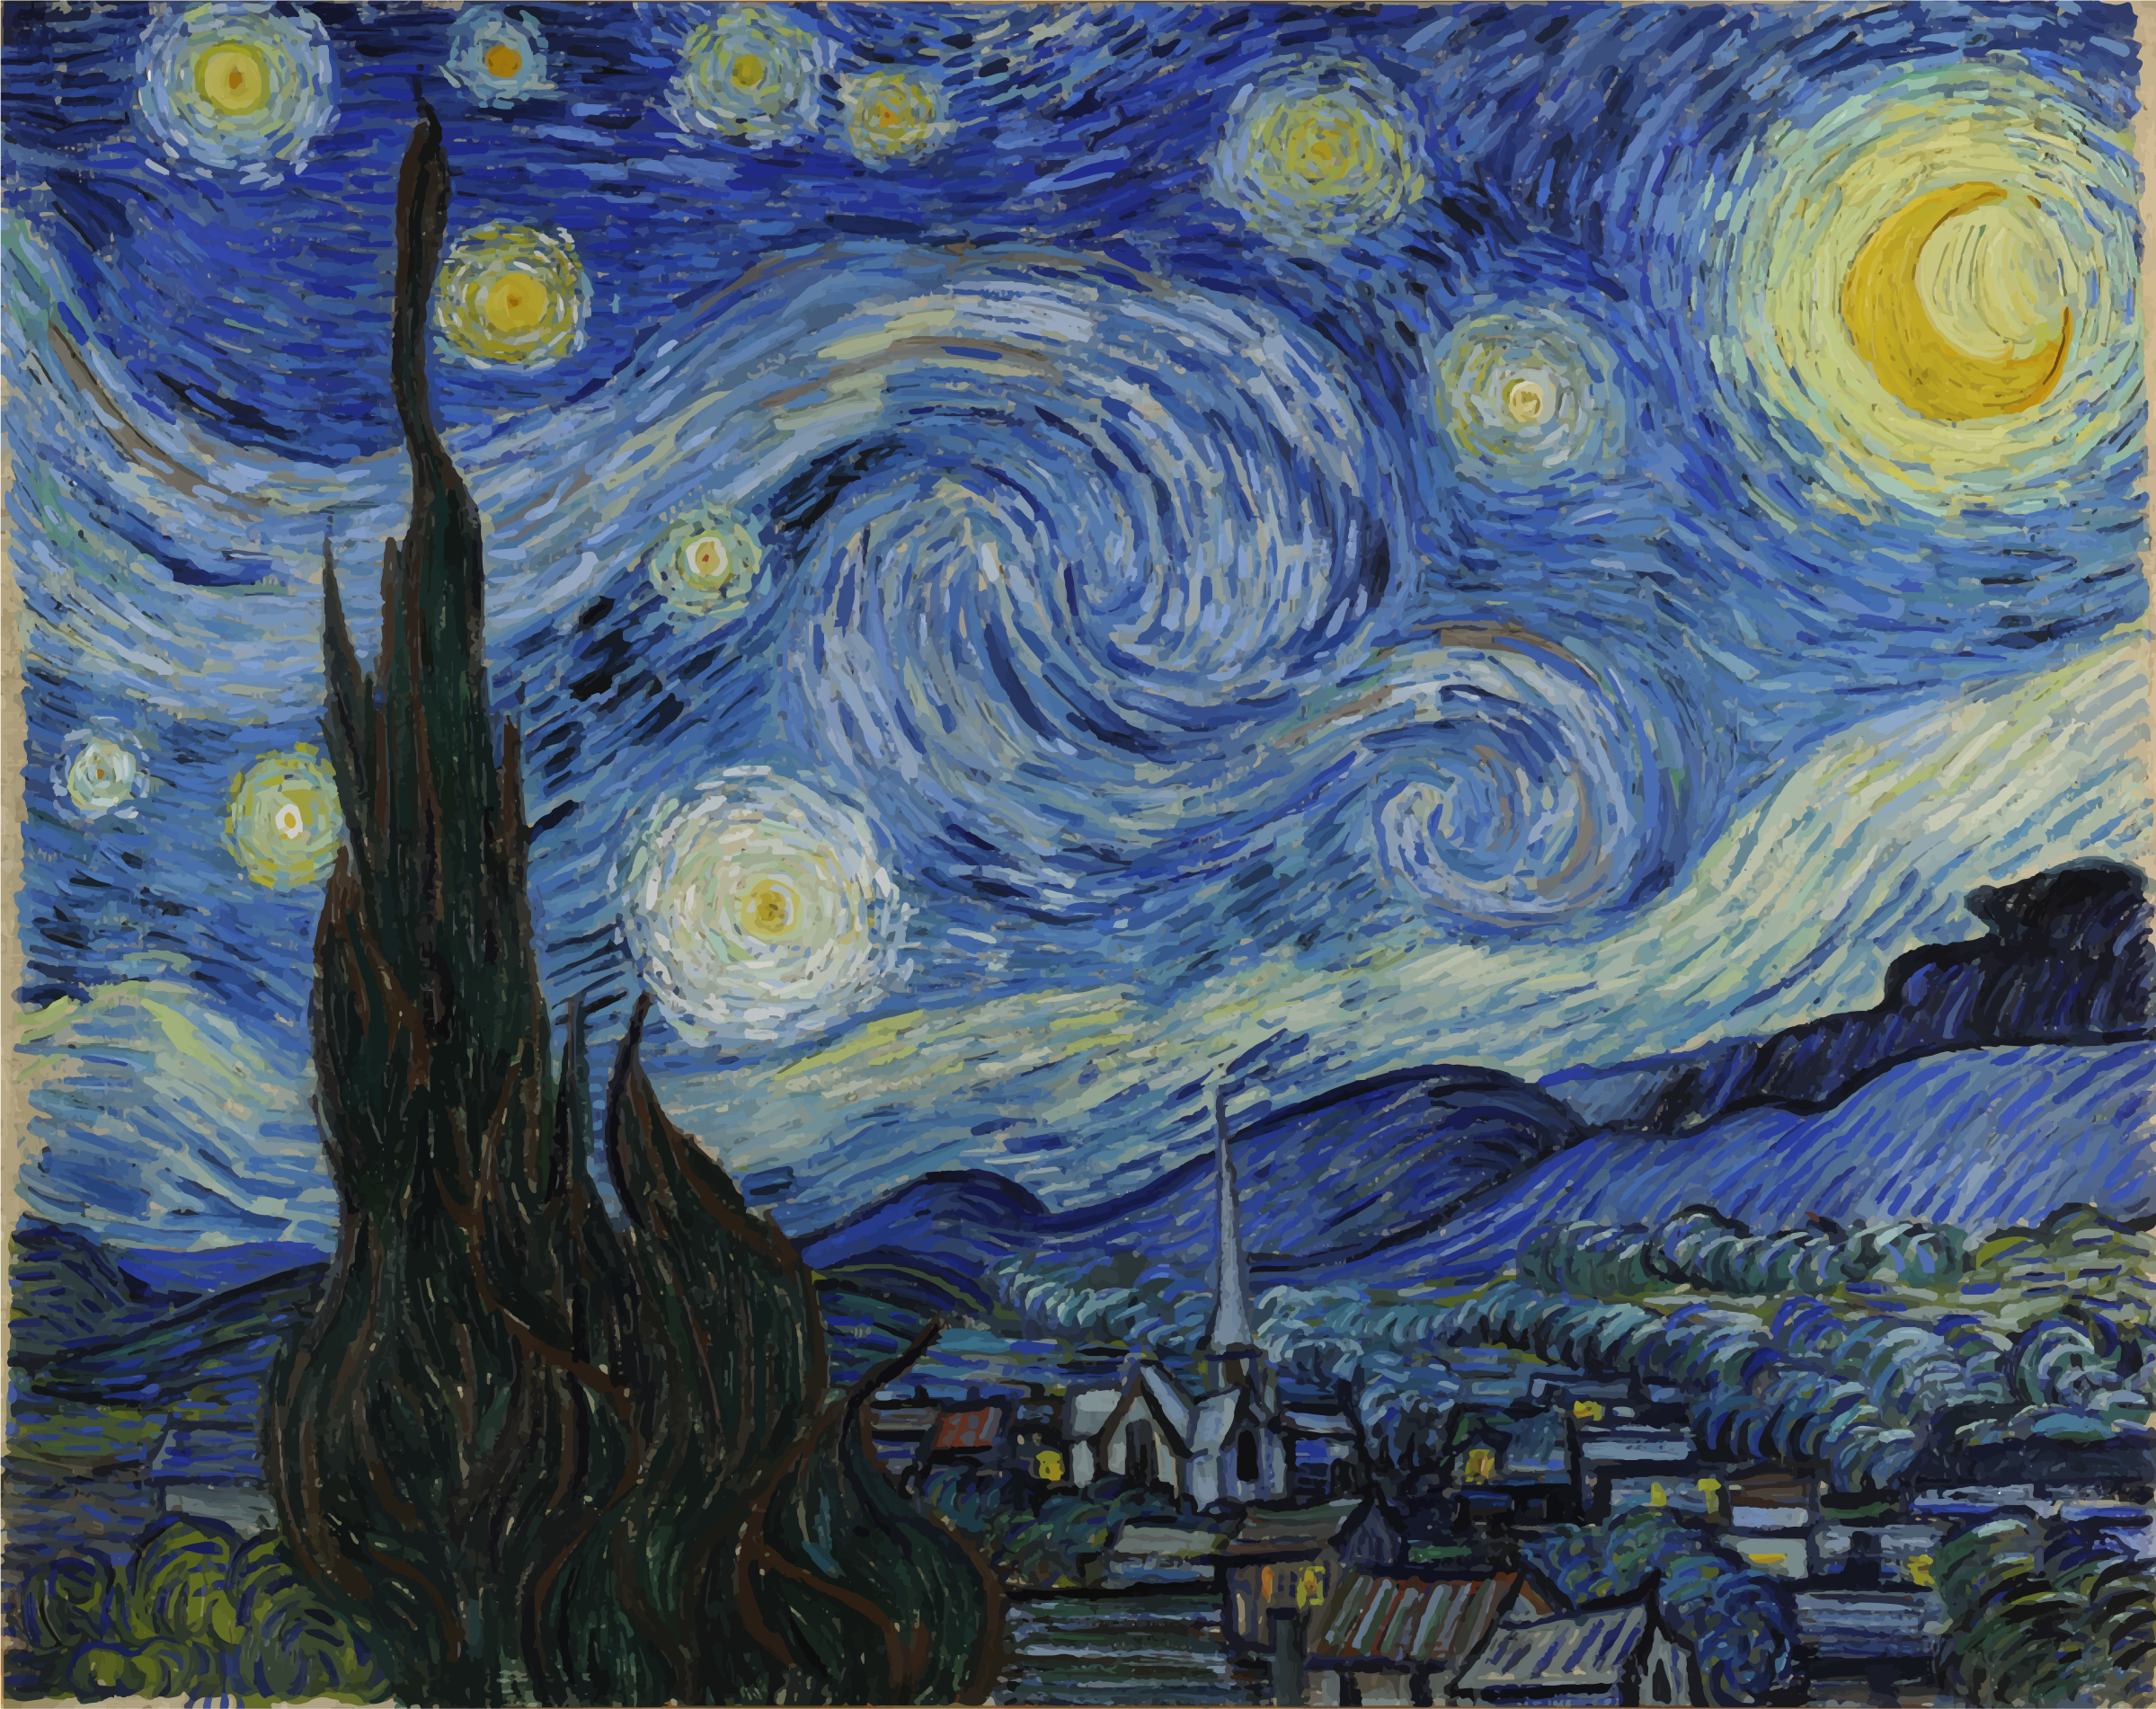 Van Gogh Starry Night by GDJ